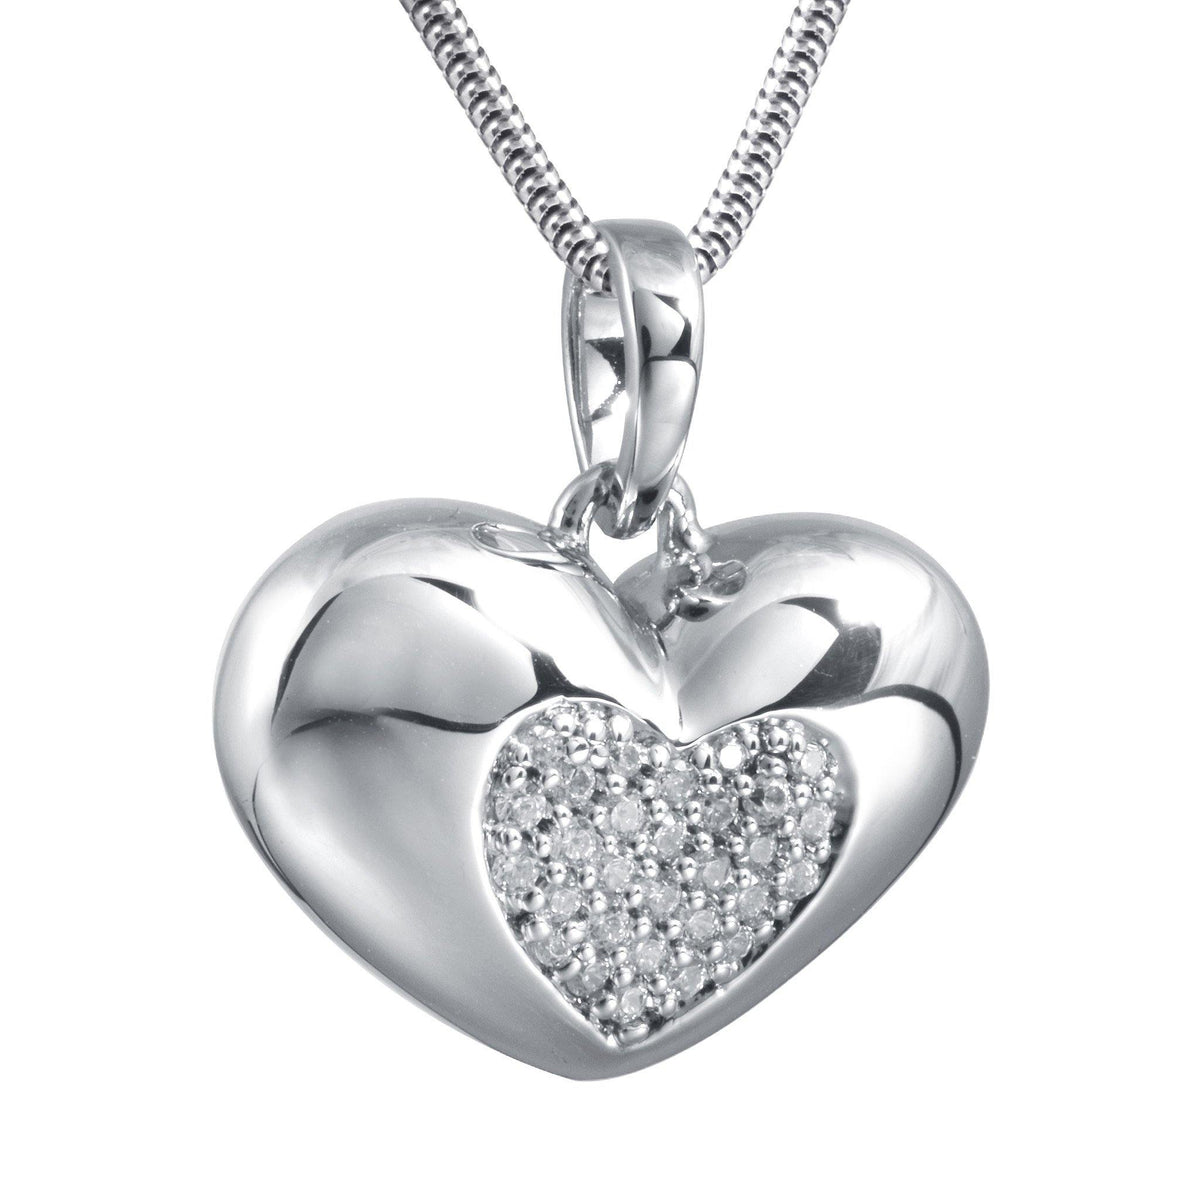 Belgravia Design 3 Cremation Ashes Pendant 925 Silver - Urns UK